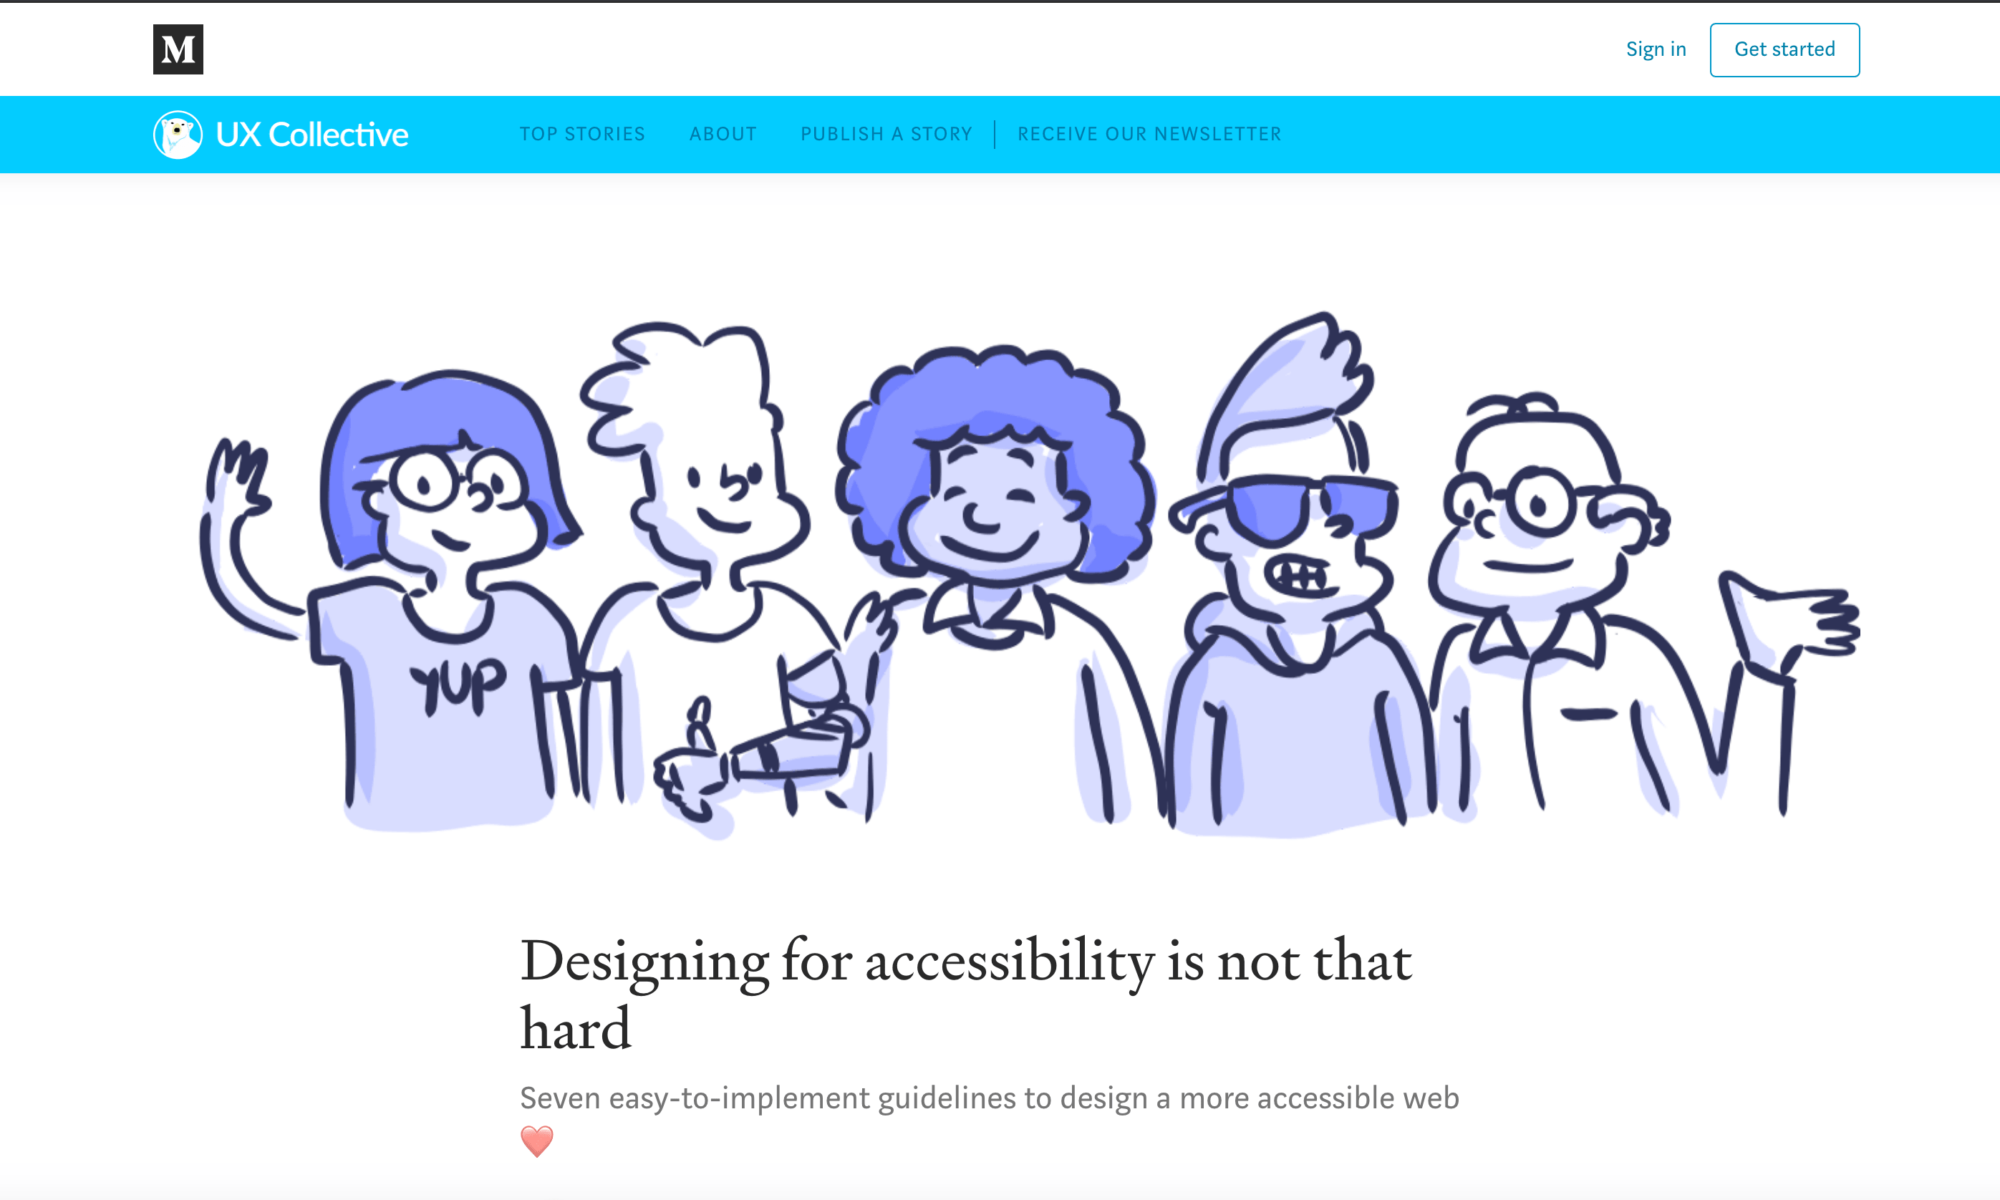 funky hand drawn image of people with disabilities standing together. Landing page.